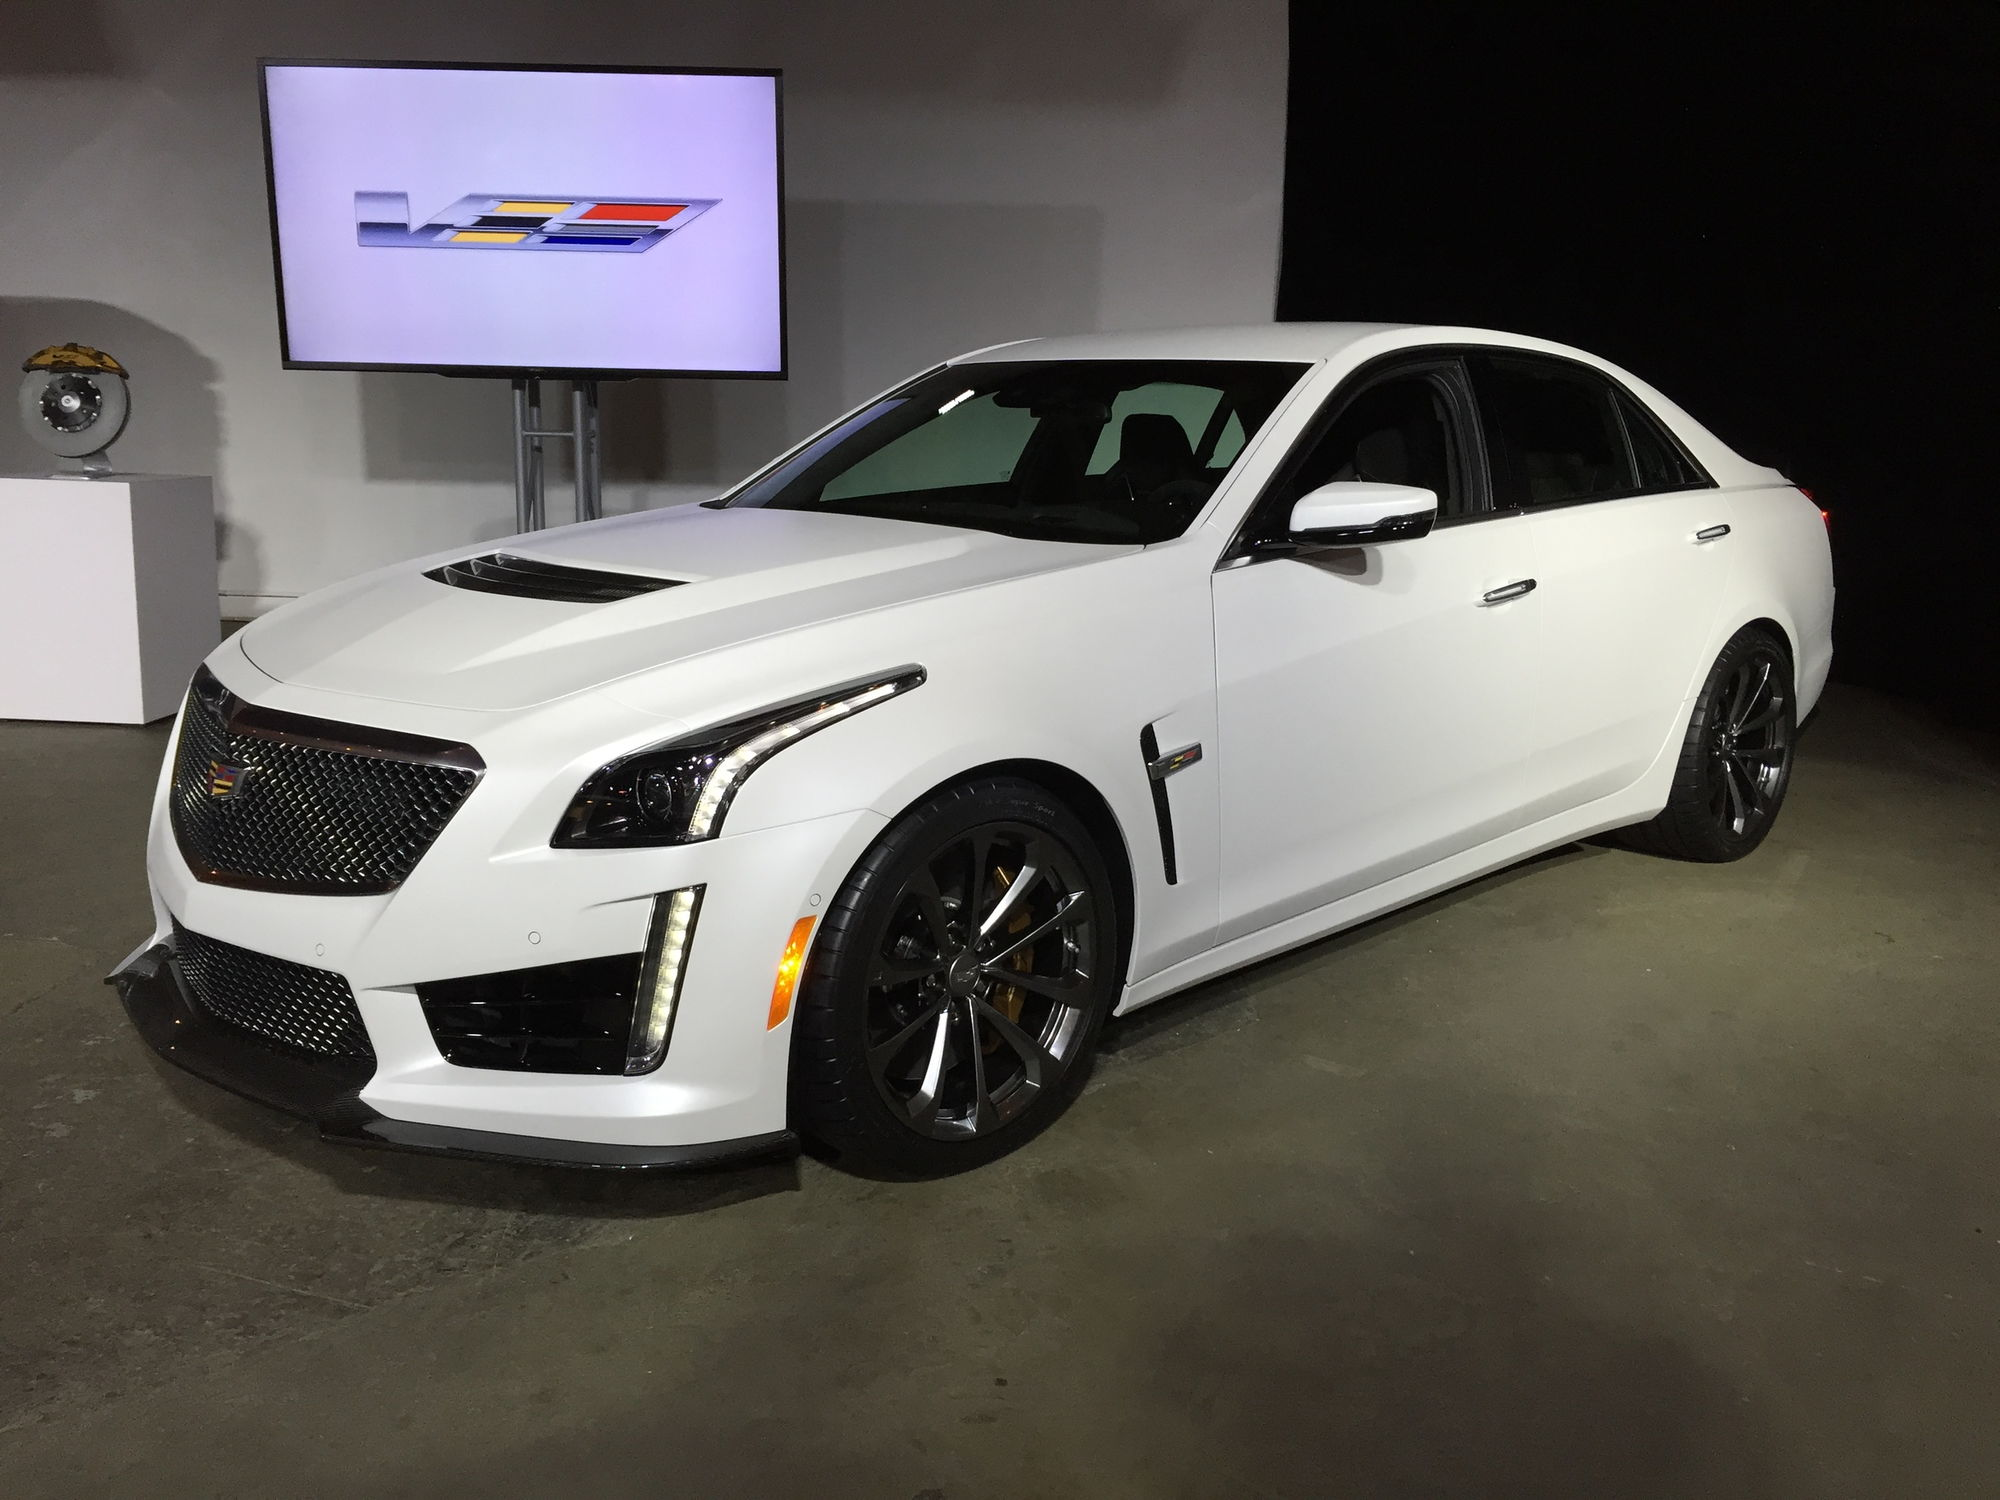 2016 cadillac cts v arrives with 640 hp 200 mph top speed clublexus lexus forum discussion. Black Bedroom Furniture Sets. Home Design Ideas